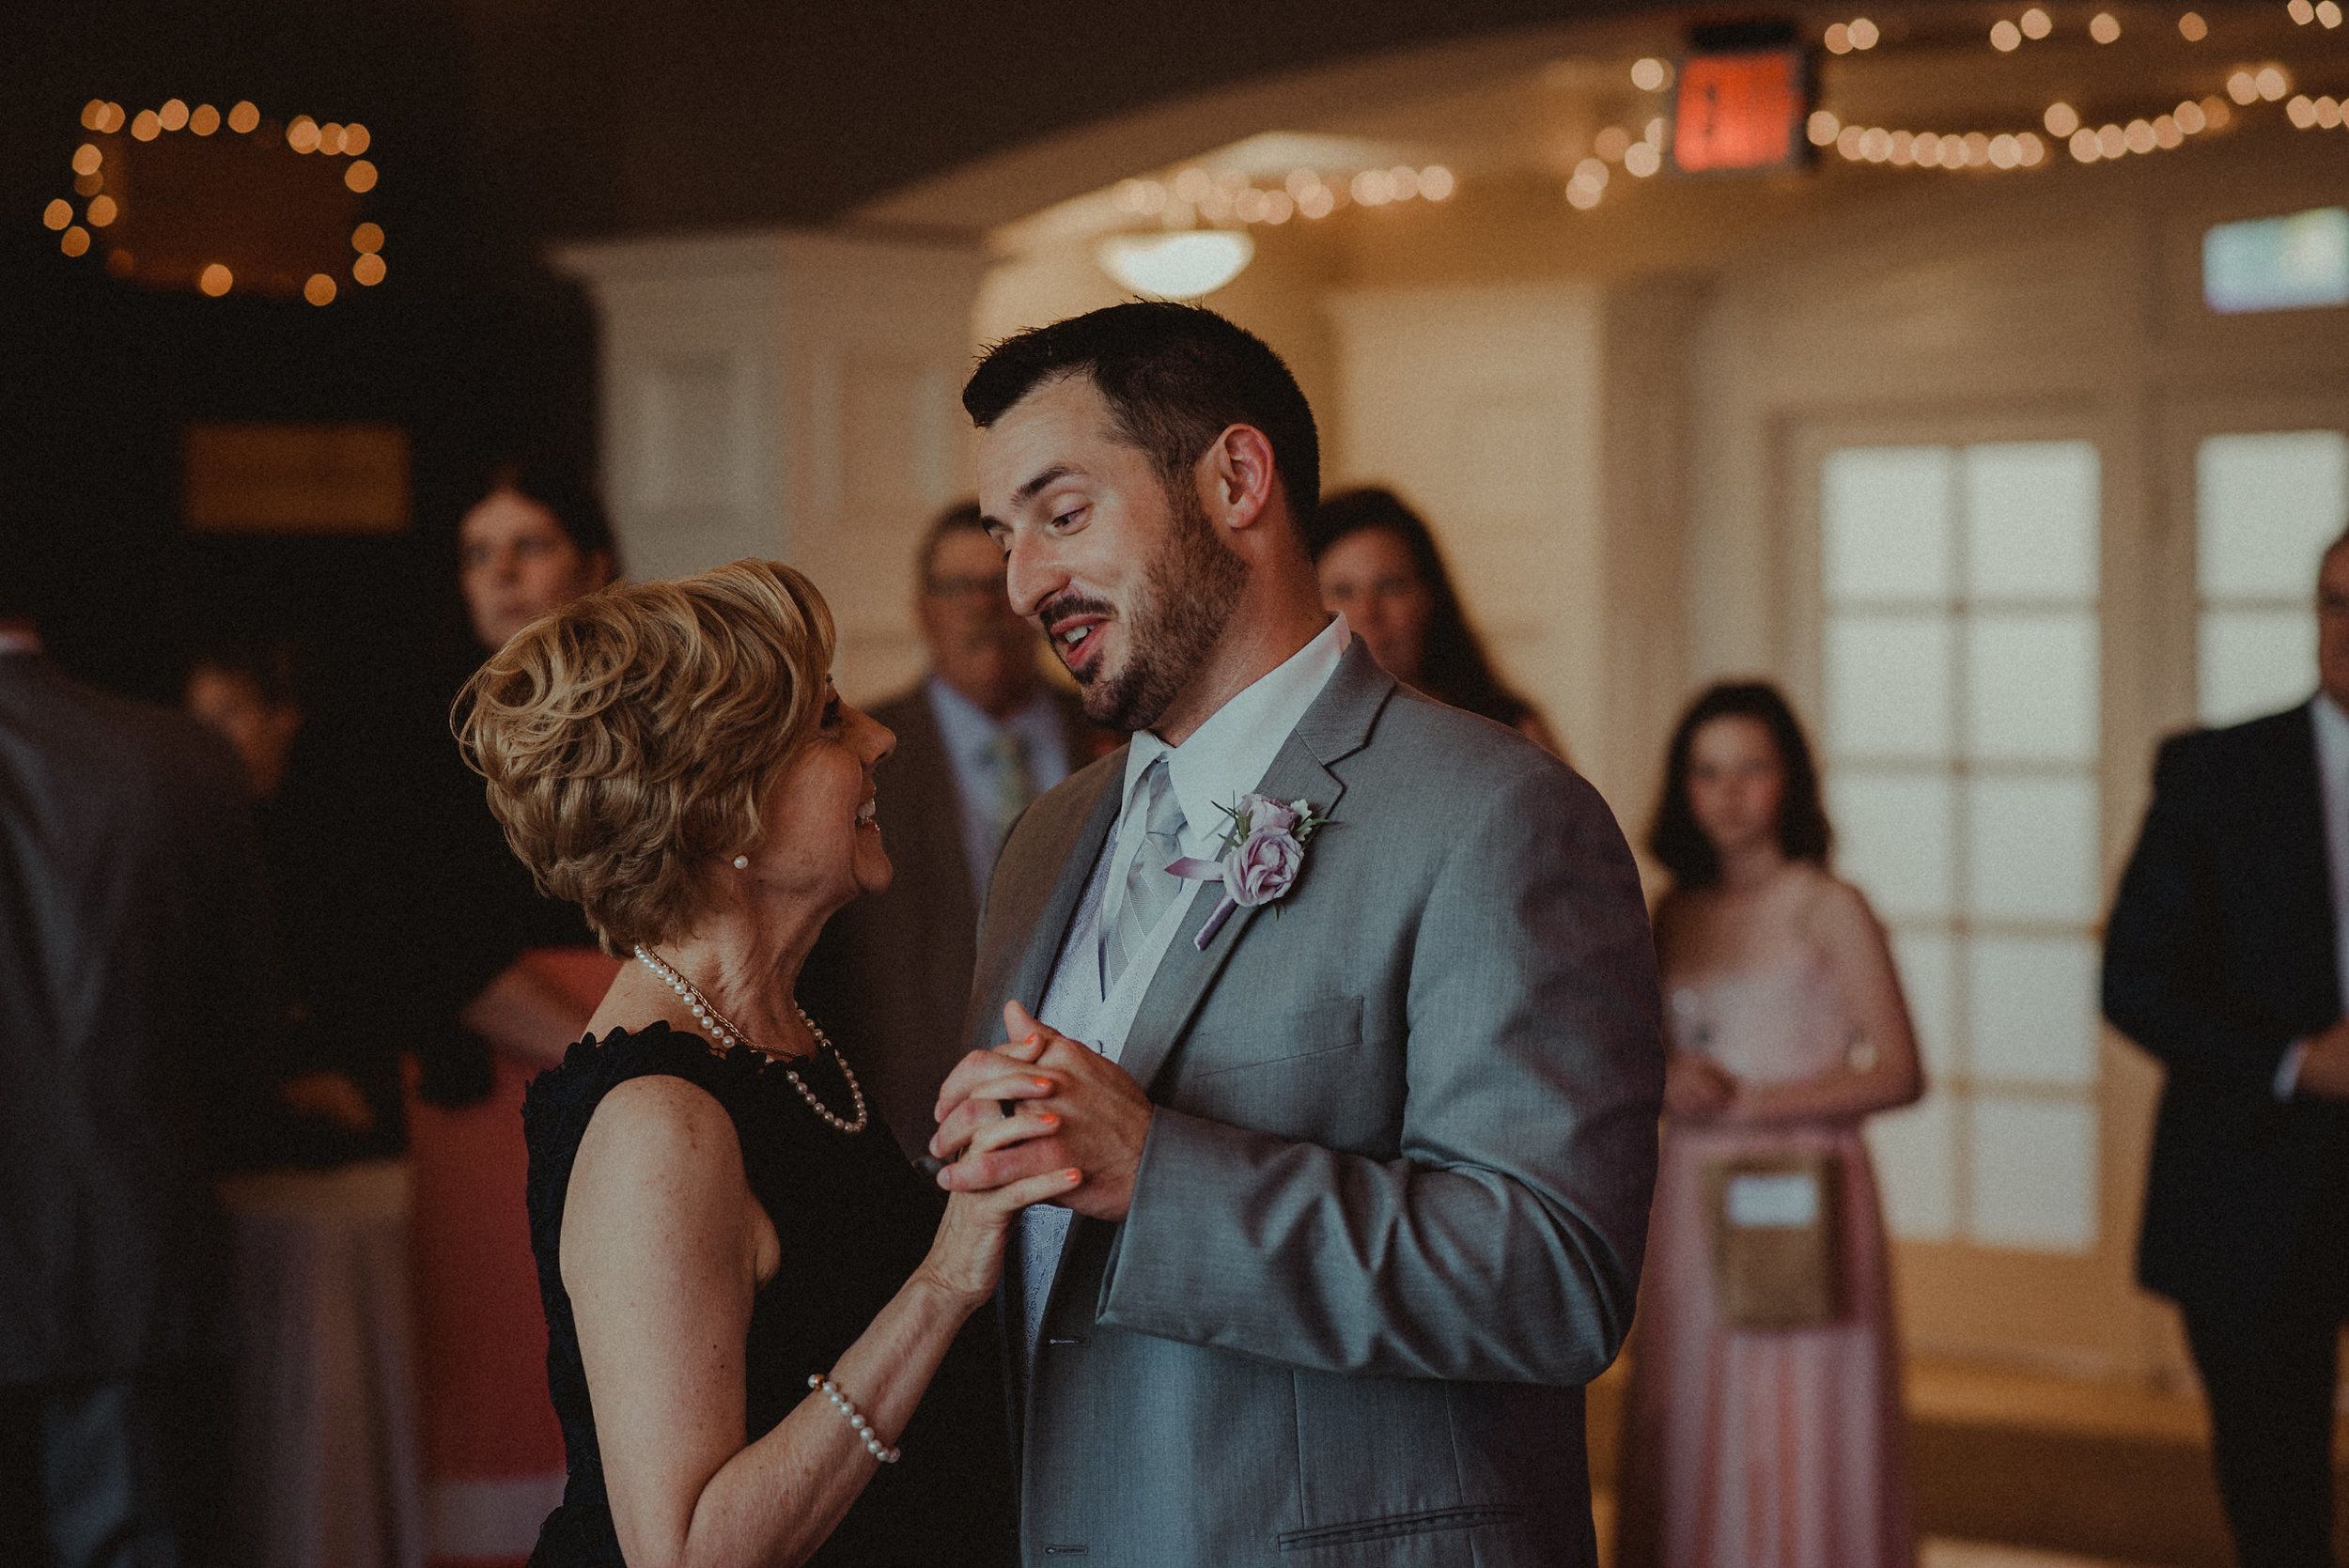 Groom dancing with mother in law